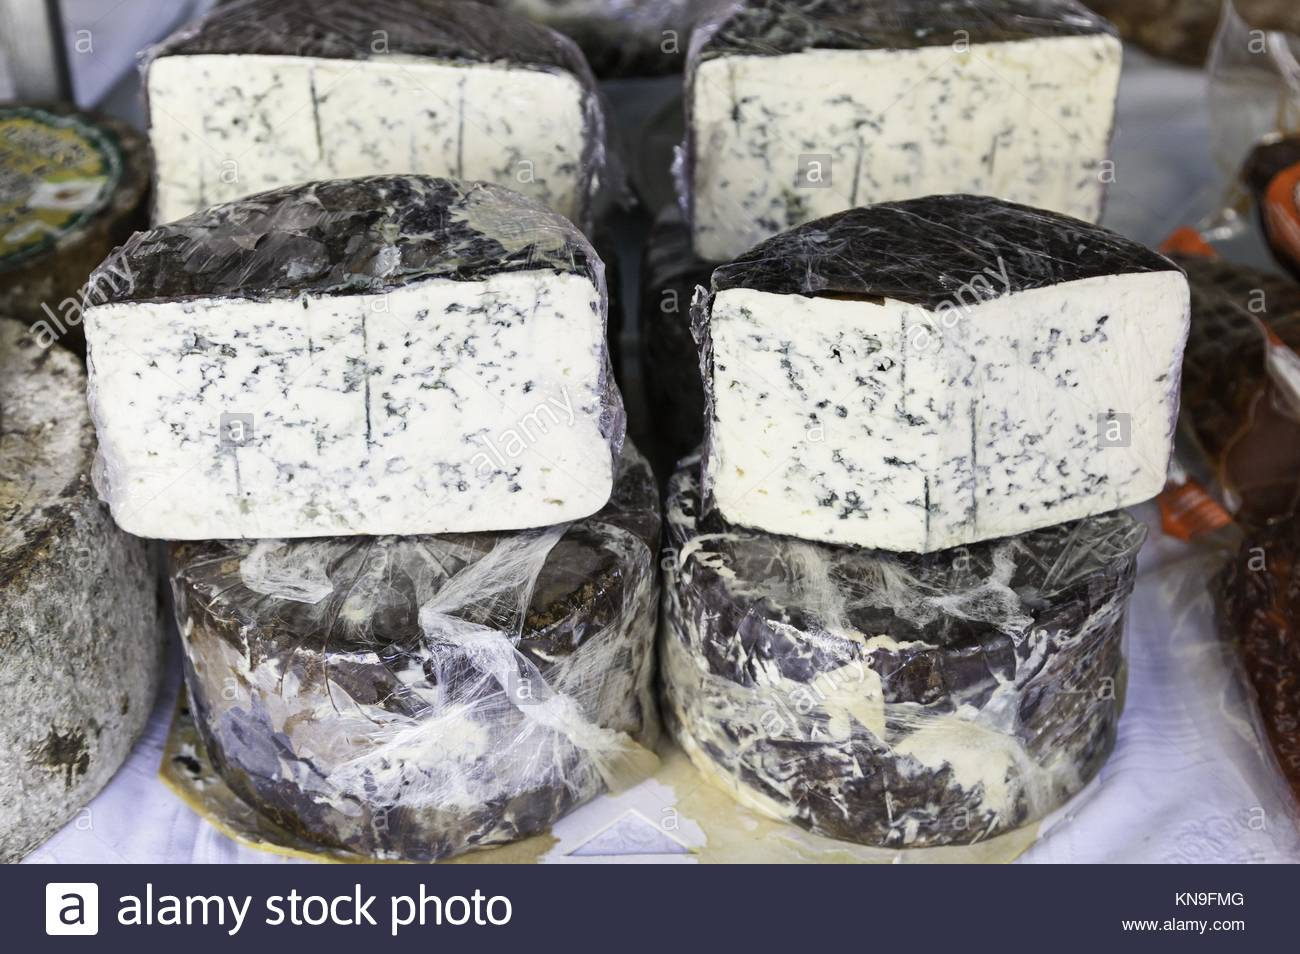 Blue Cheese in a market, detail of an old cheese on a post at a store, healthy food. - Stock Image